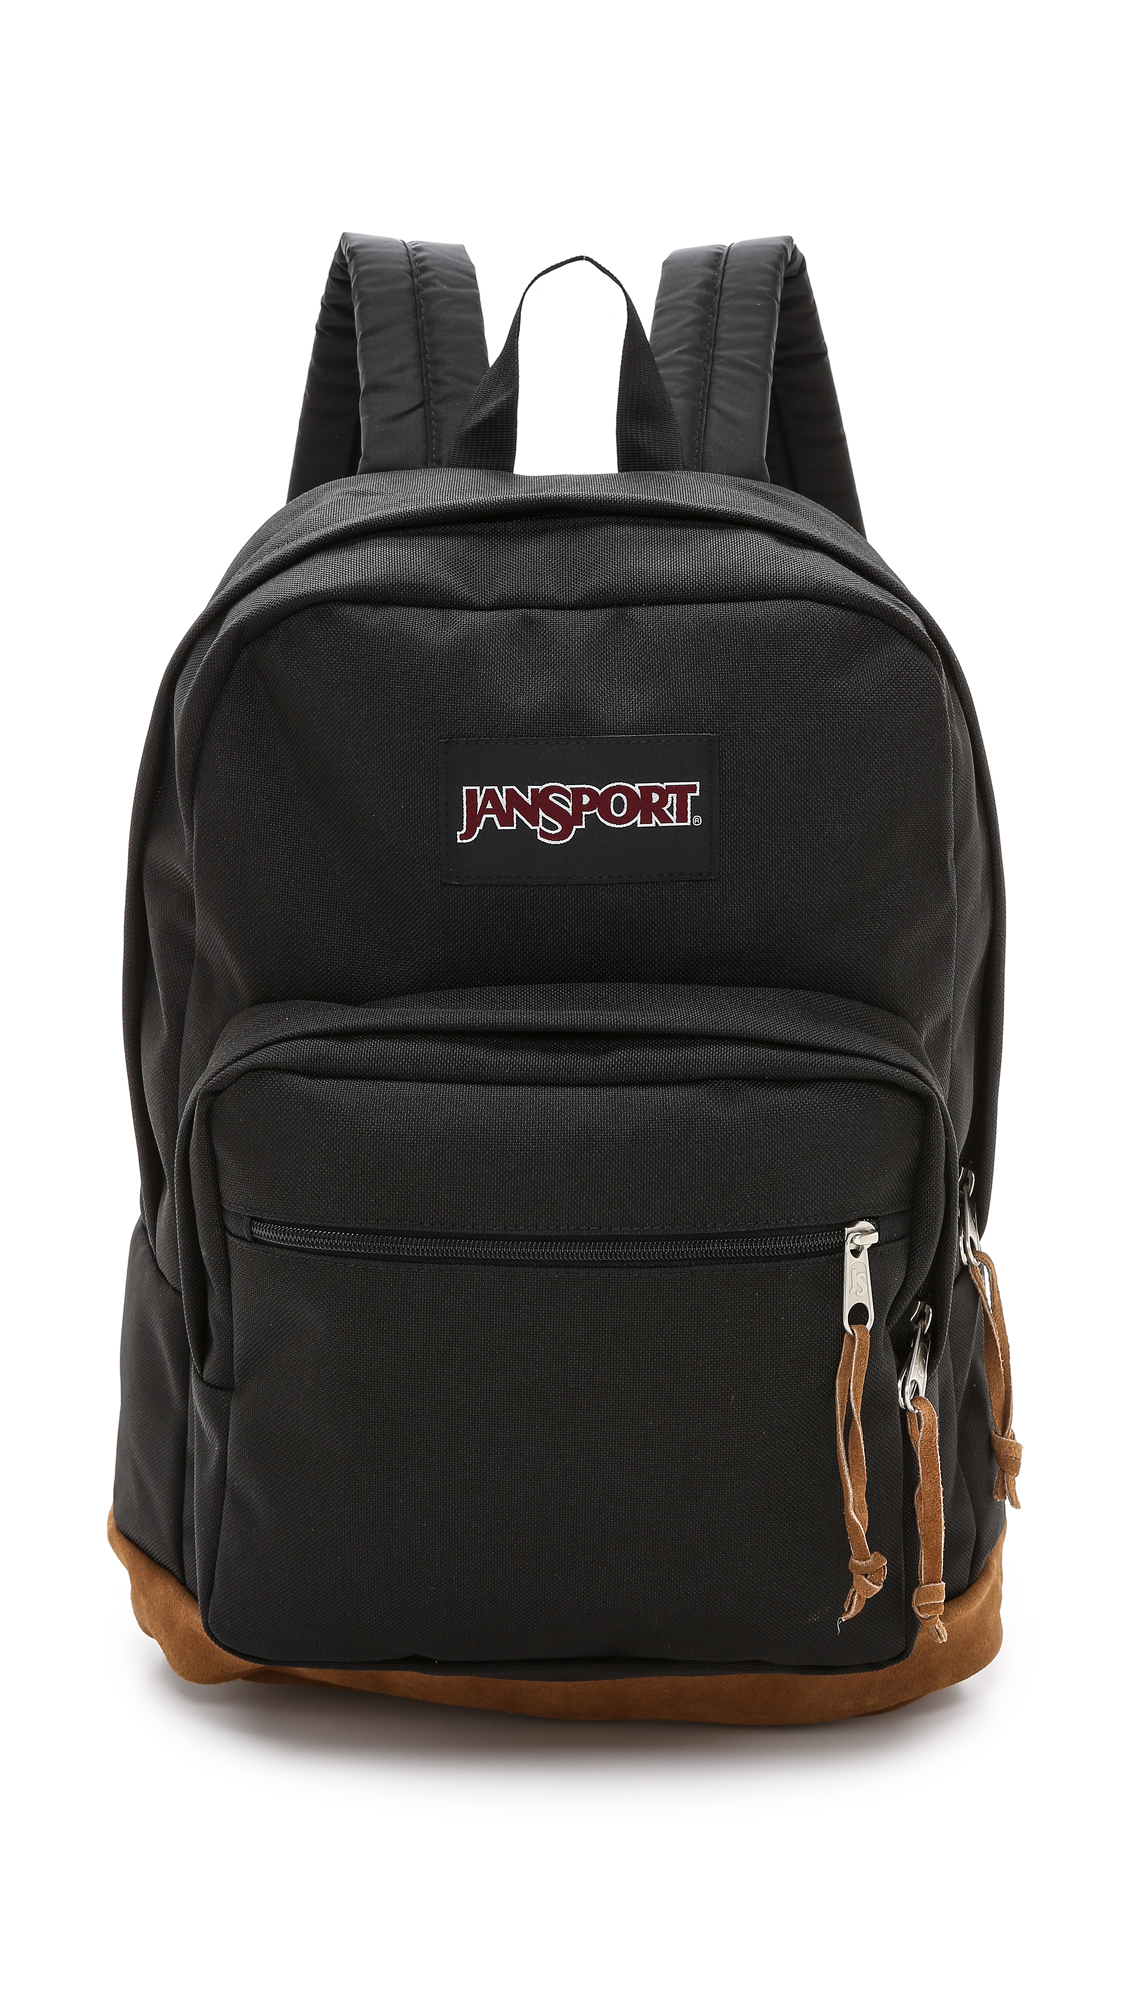 1696bca093 Where Can I Buy Jansport Backpacks In The Uk- Fenix Toulouse Handball